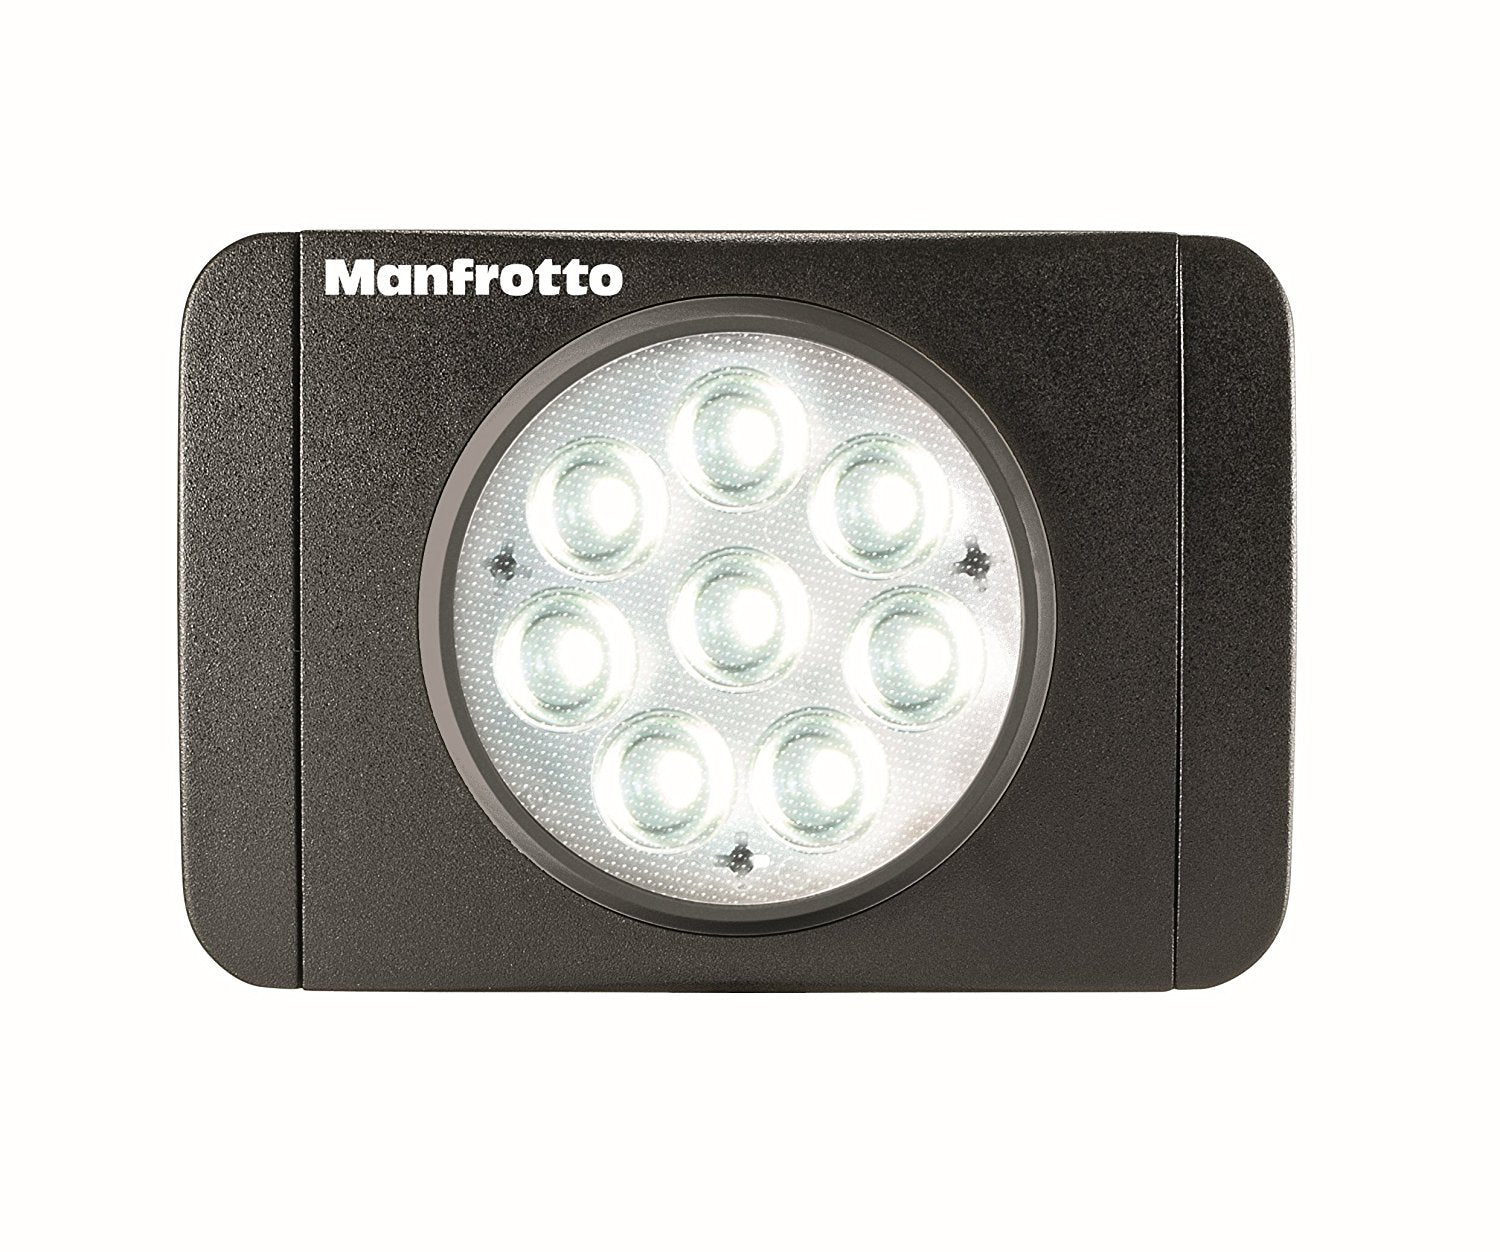 Lámpara Manfrotto Serie Lumie de 8 Led's (MLUMIEMU-BK)